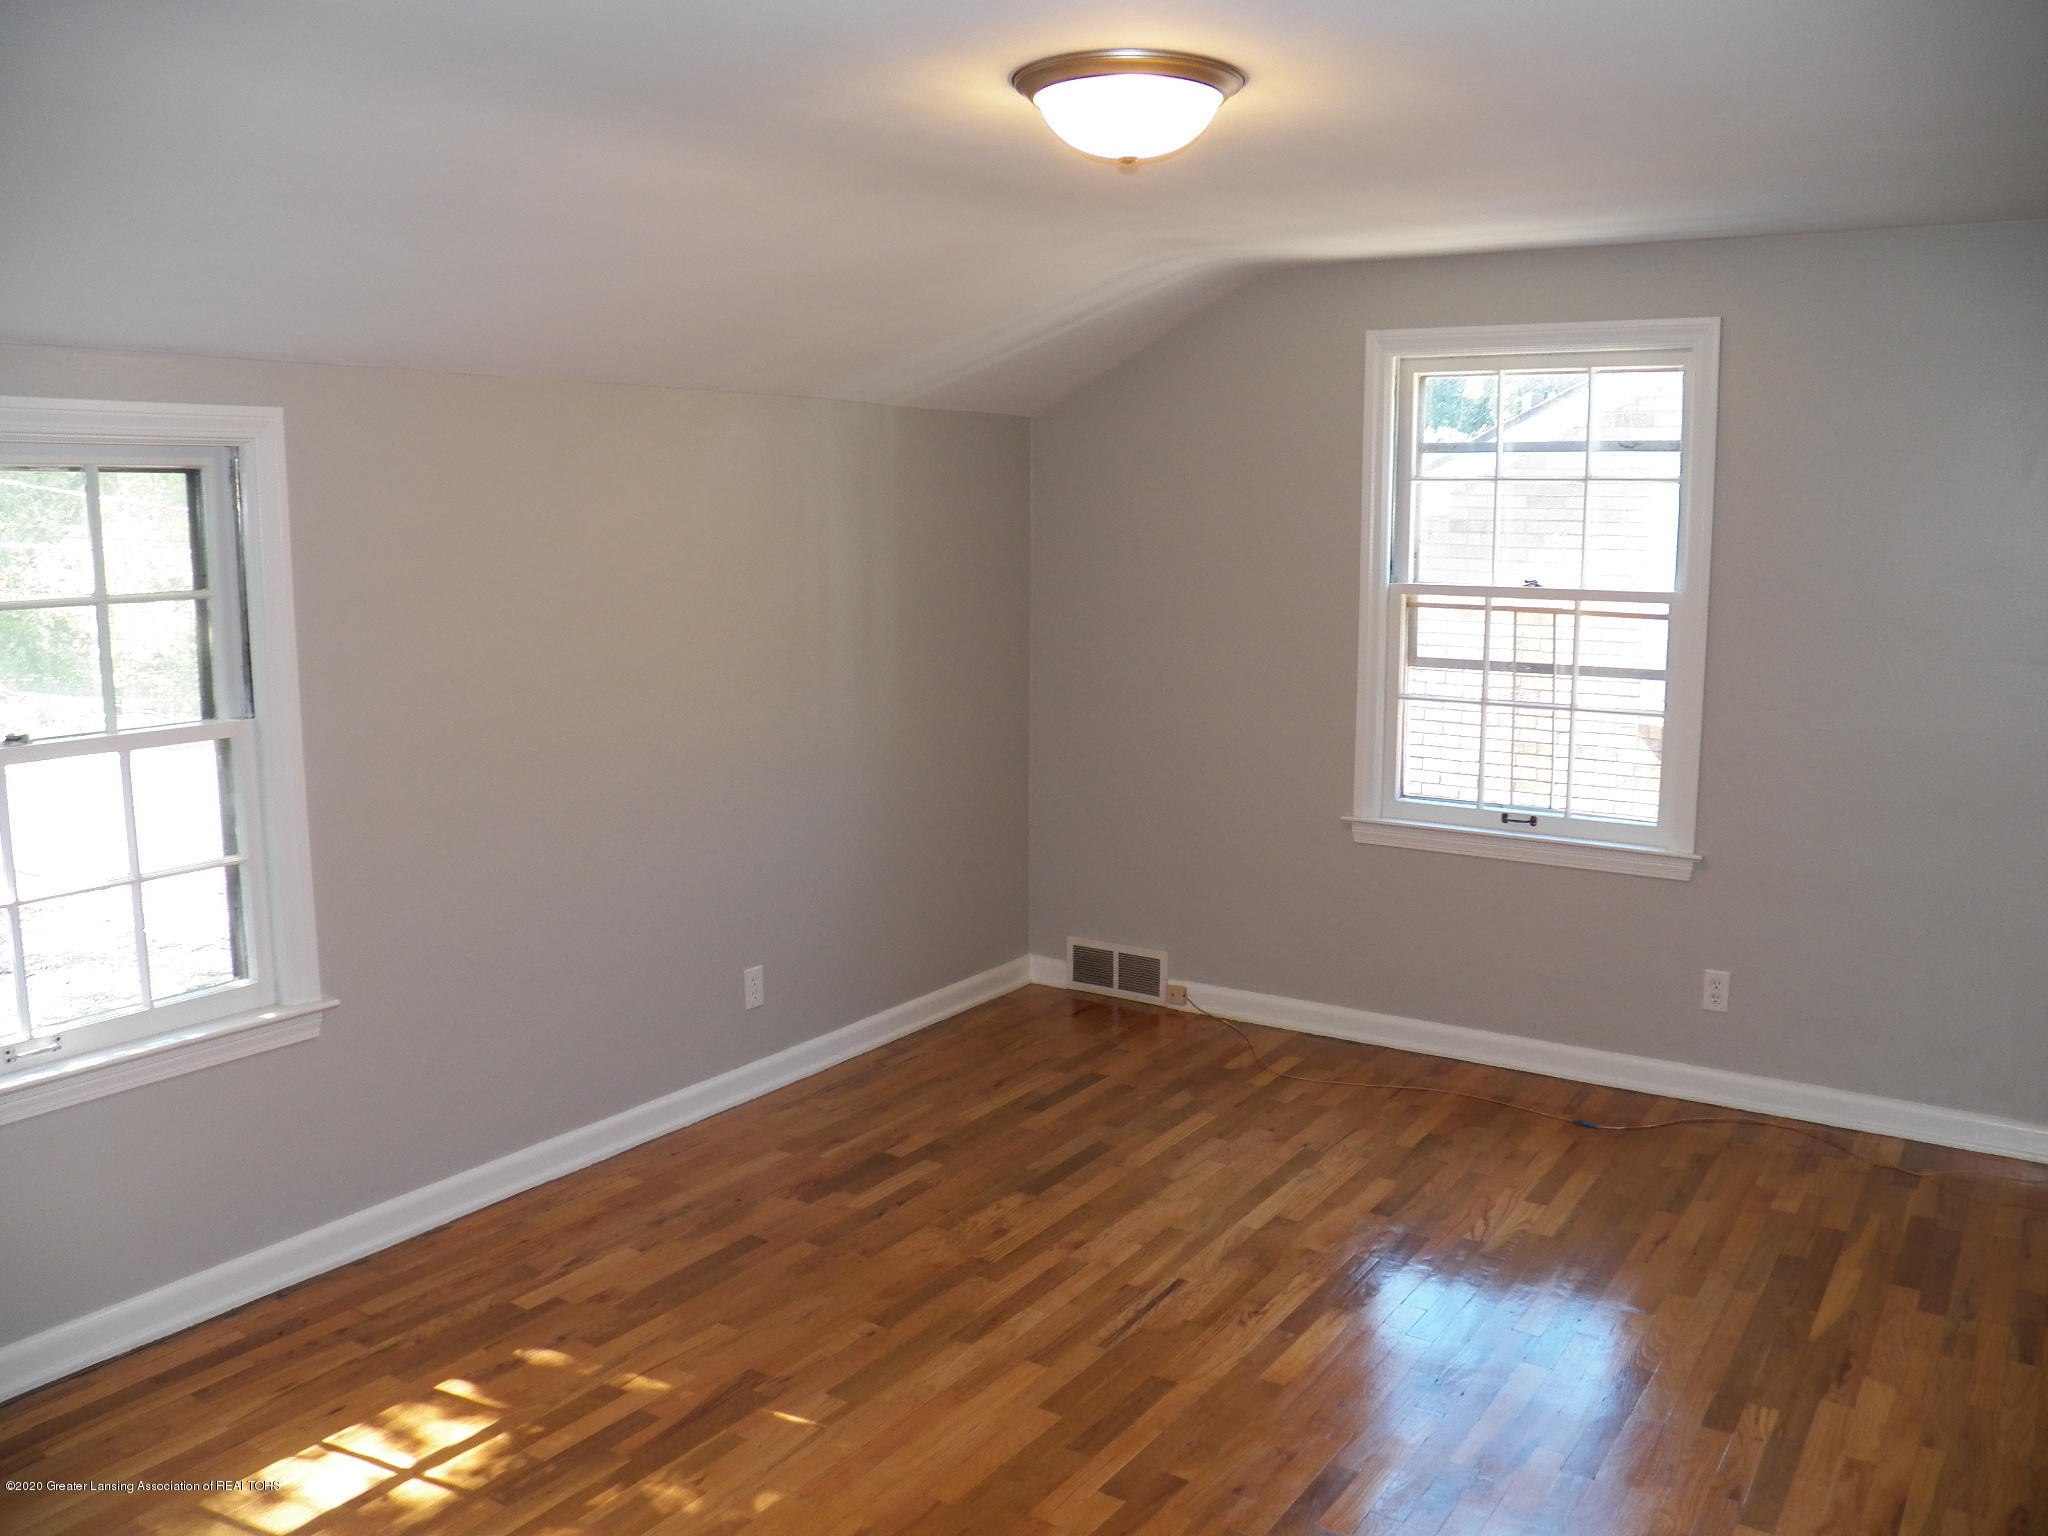 1812 Shubel Ave - bed 2 - 7